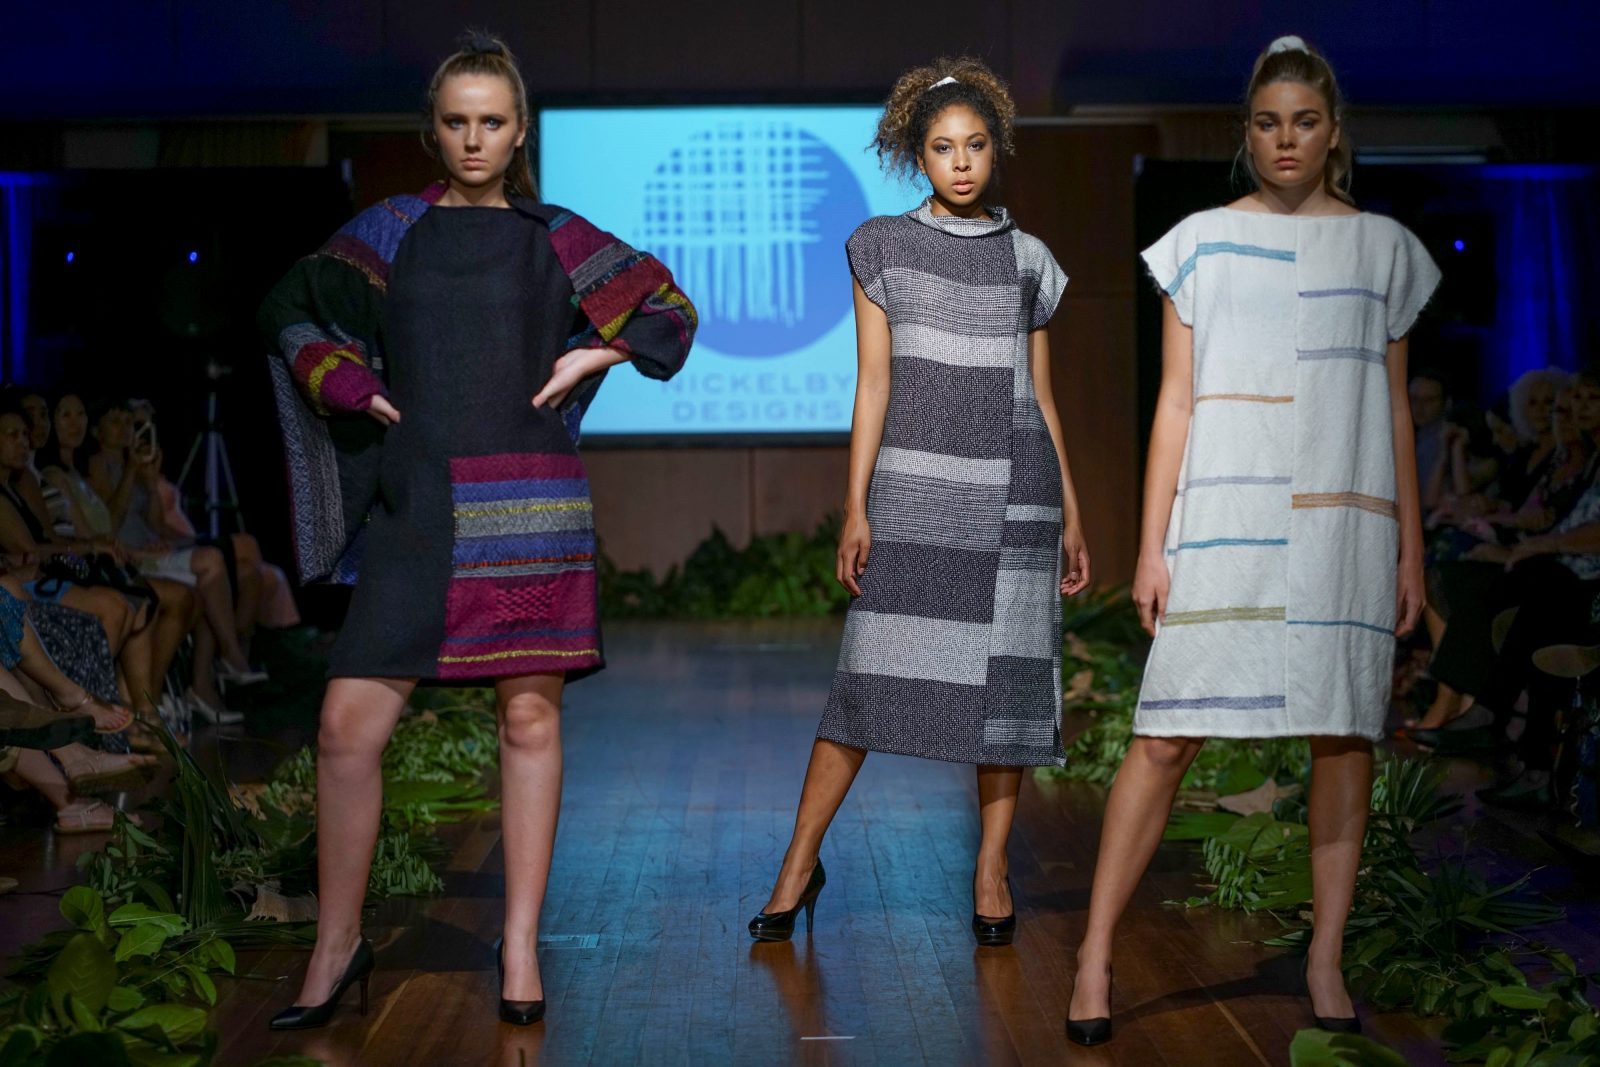 Nickelby Designs on the catwalk at Eco Fashion Week Australia